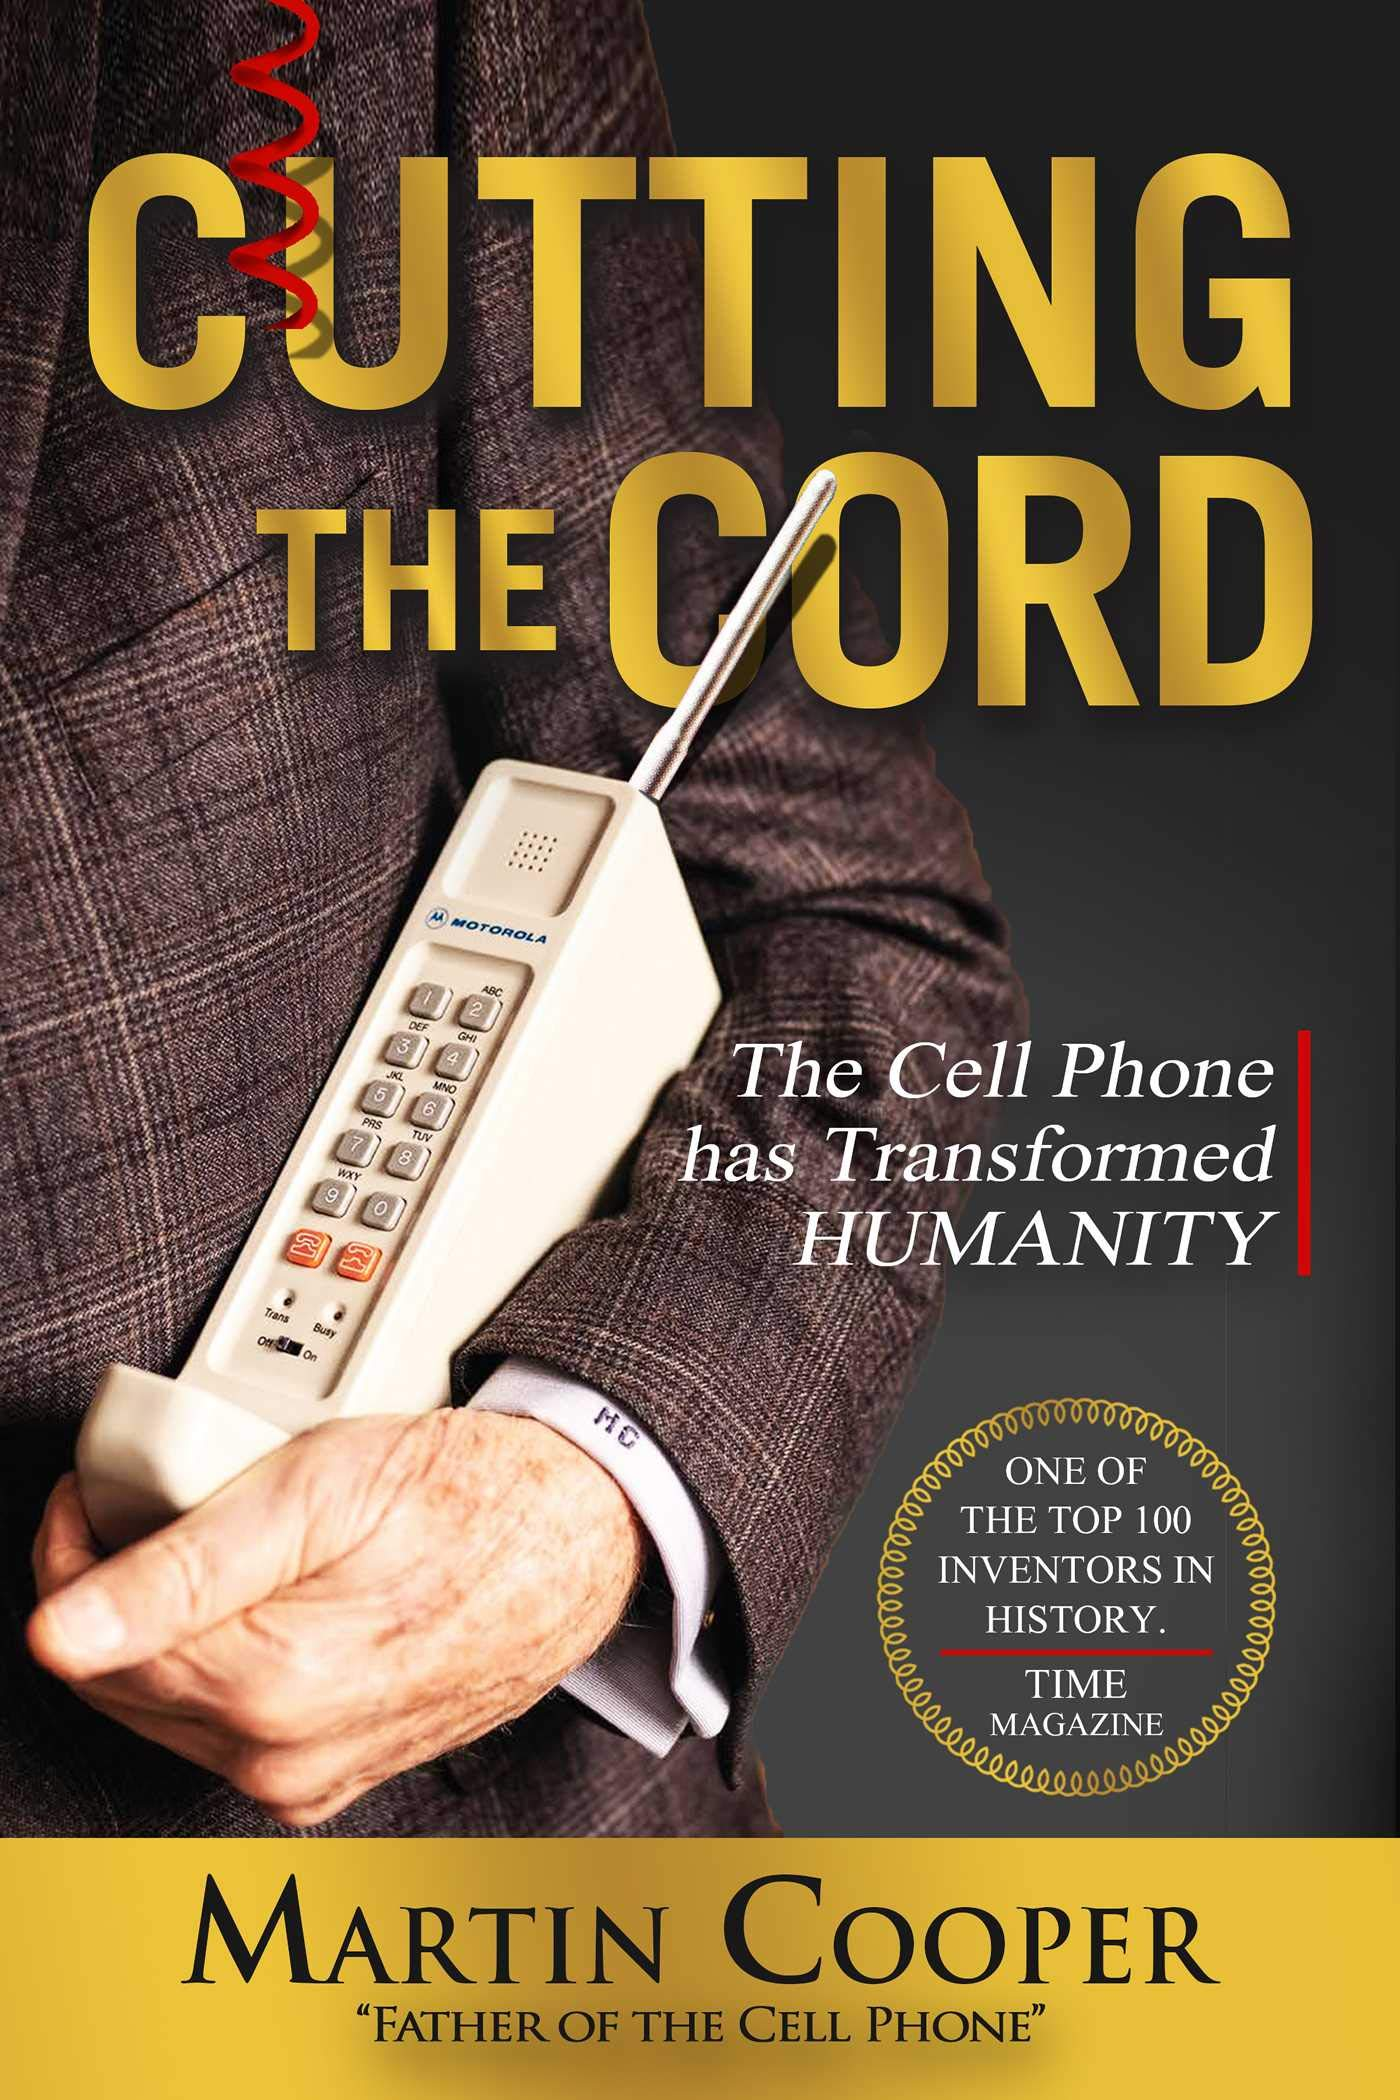 Cutting The Cord: The Cell Phone has Transformed Humanity ...